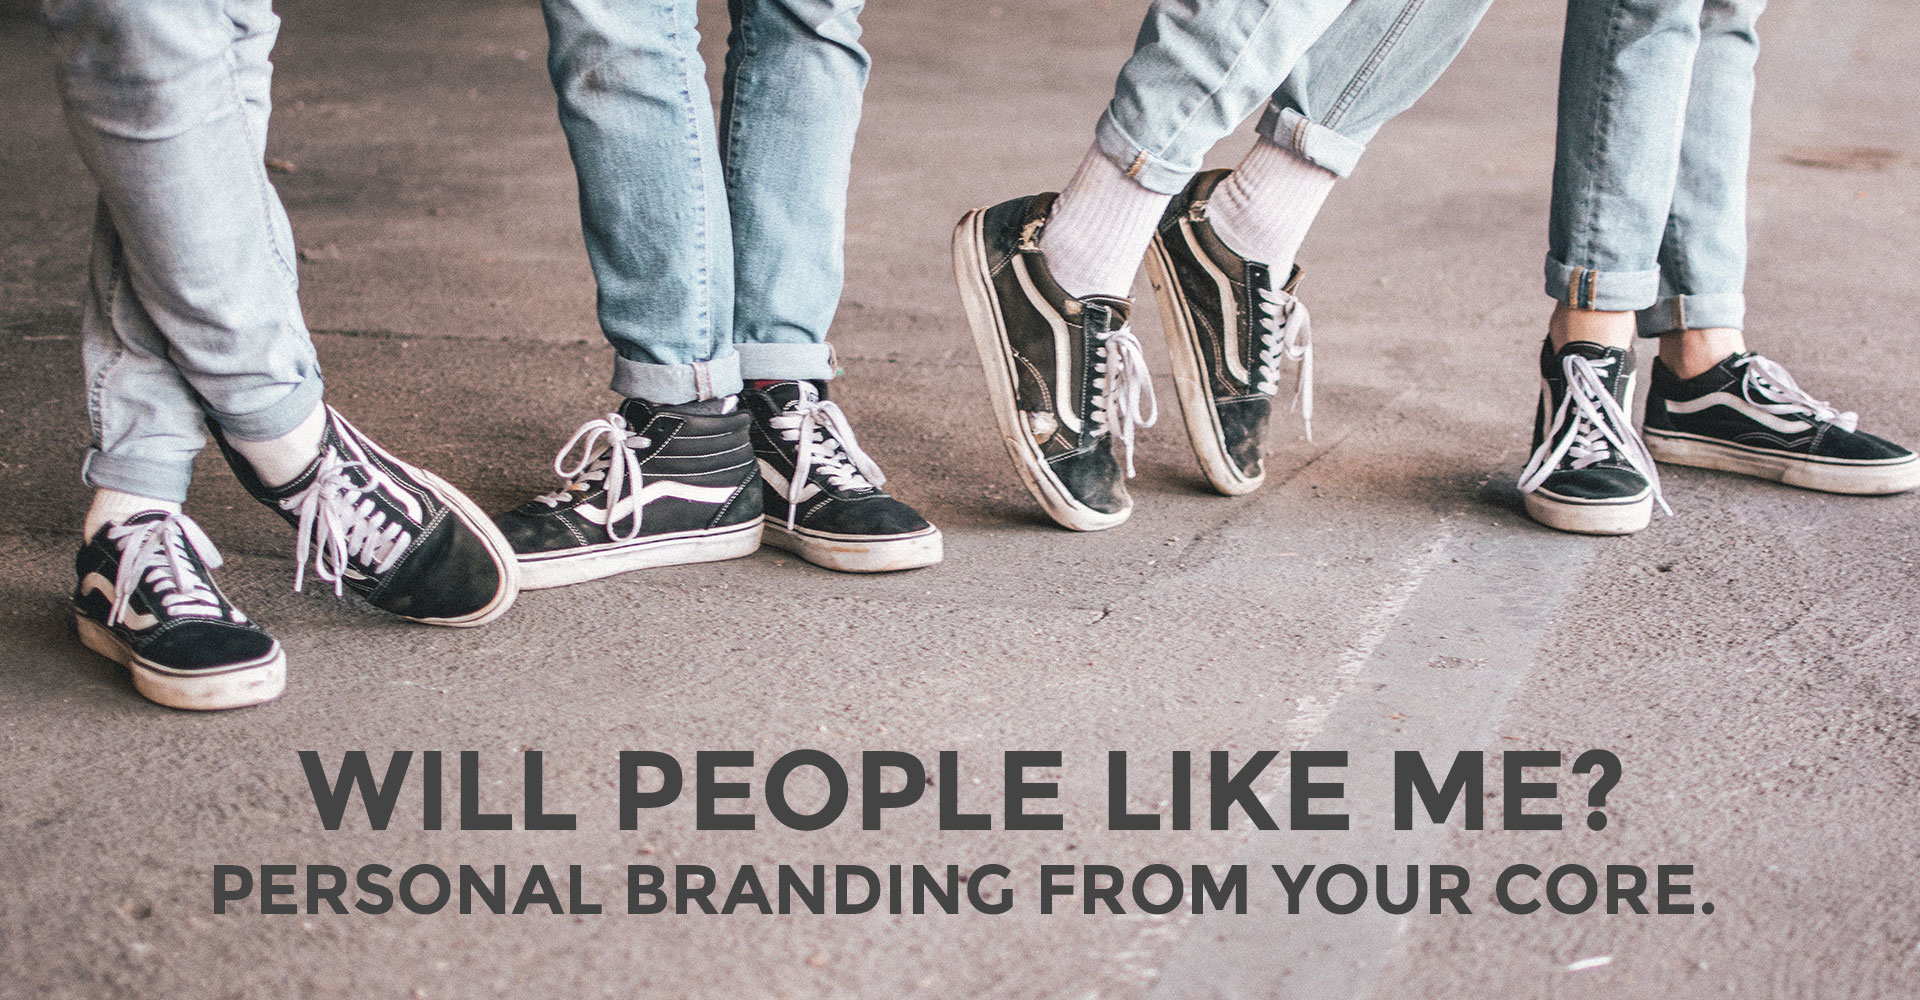 personal branding from your core